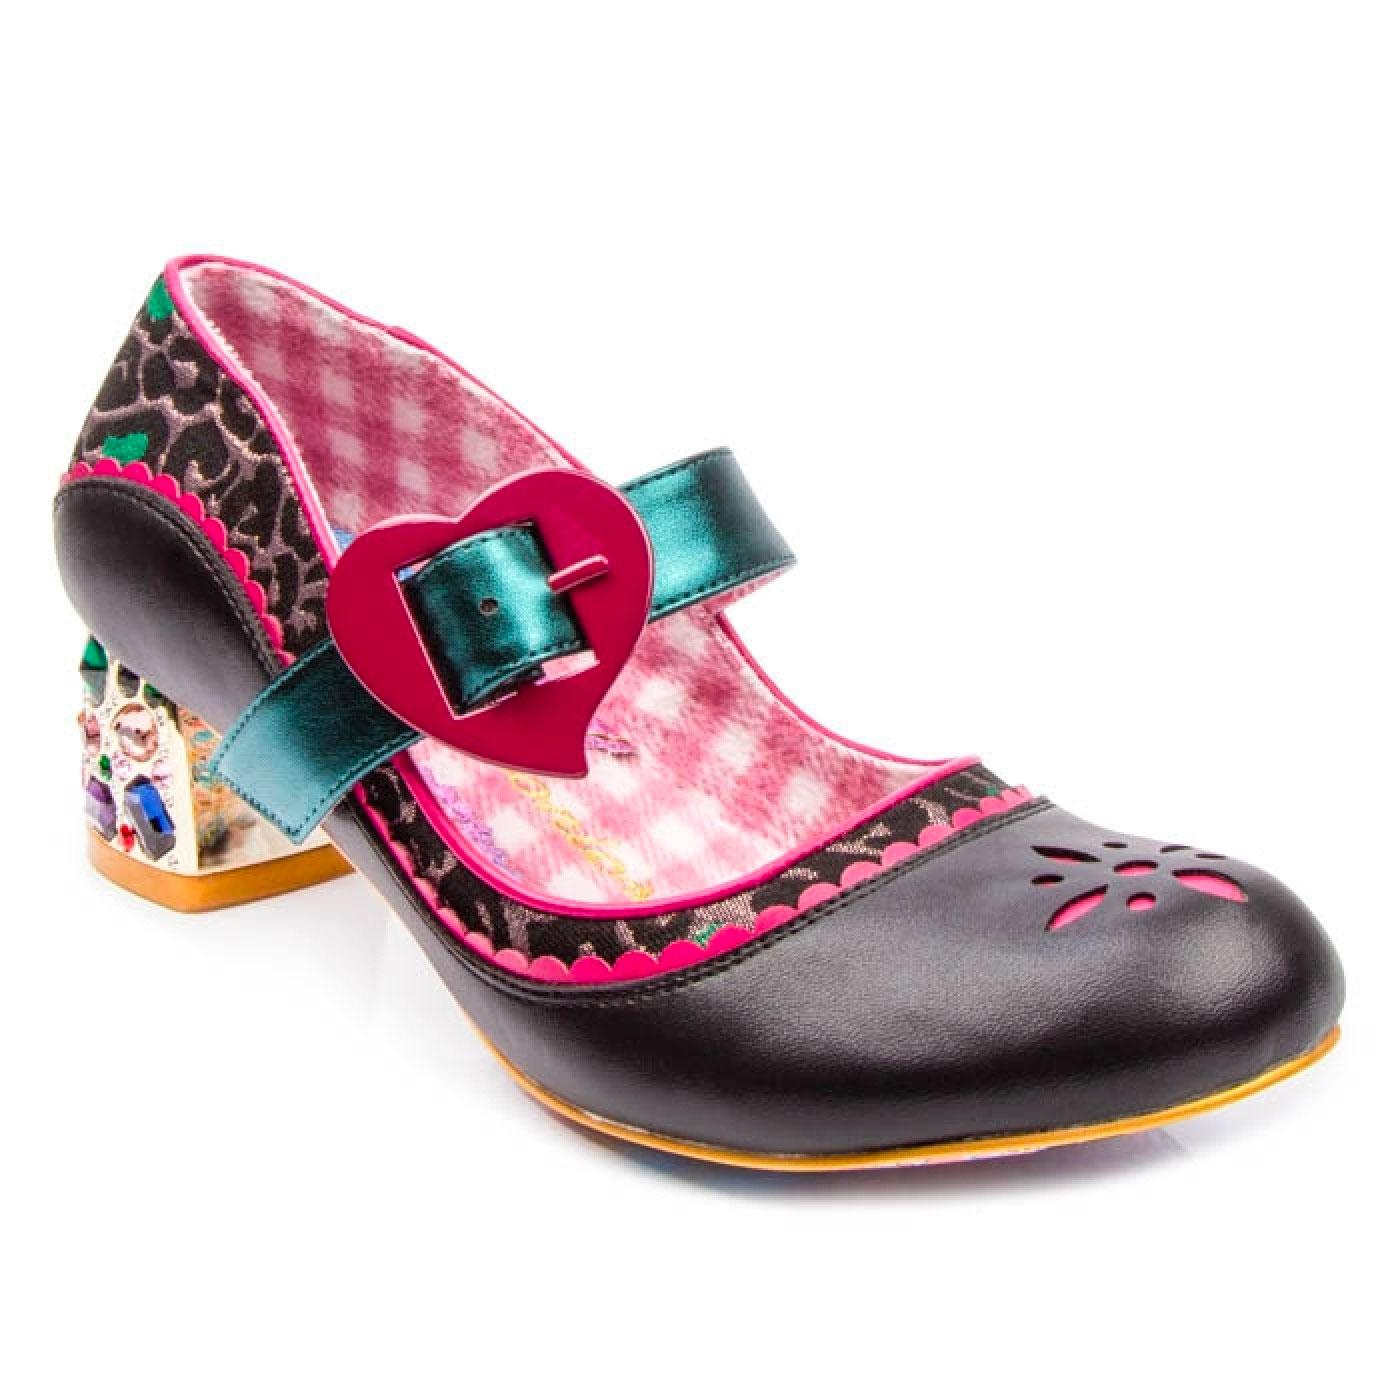 Little Jem IRREGULAR CHOICE Retro Mary Jane Shoes